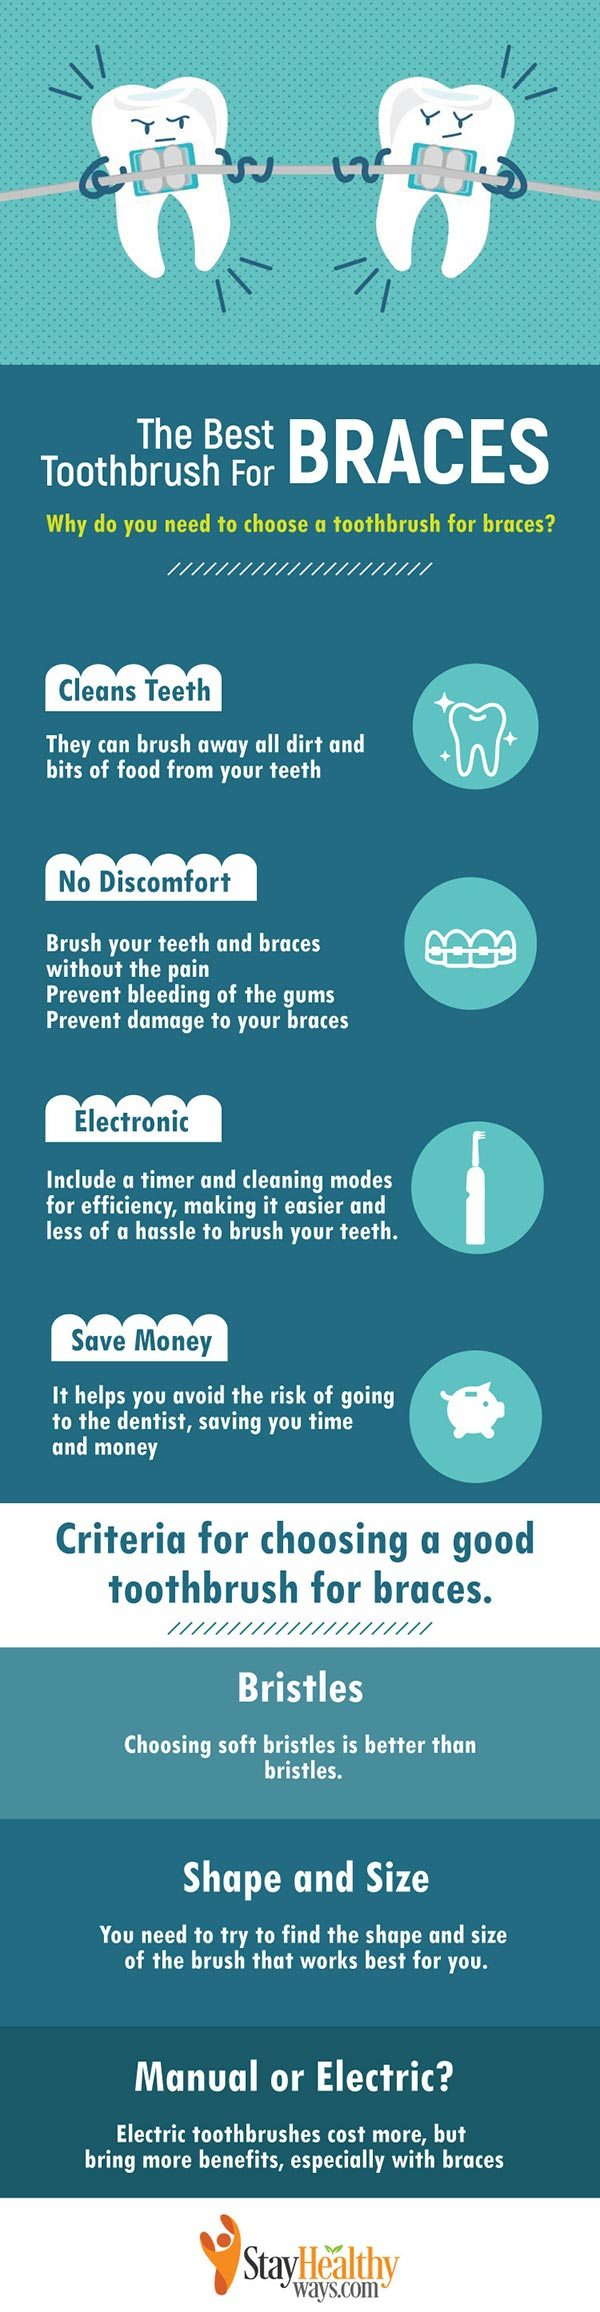 best toothbrush for braces infographic